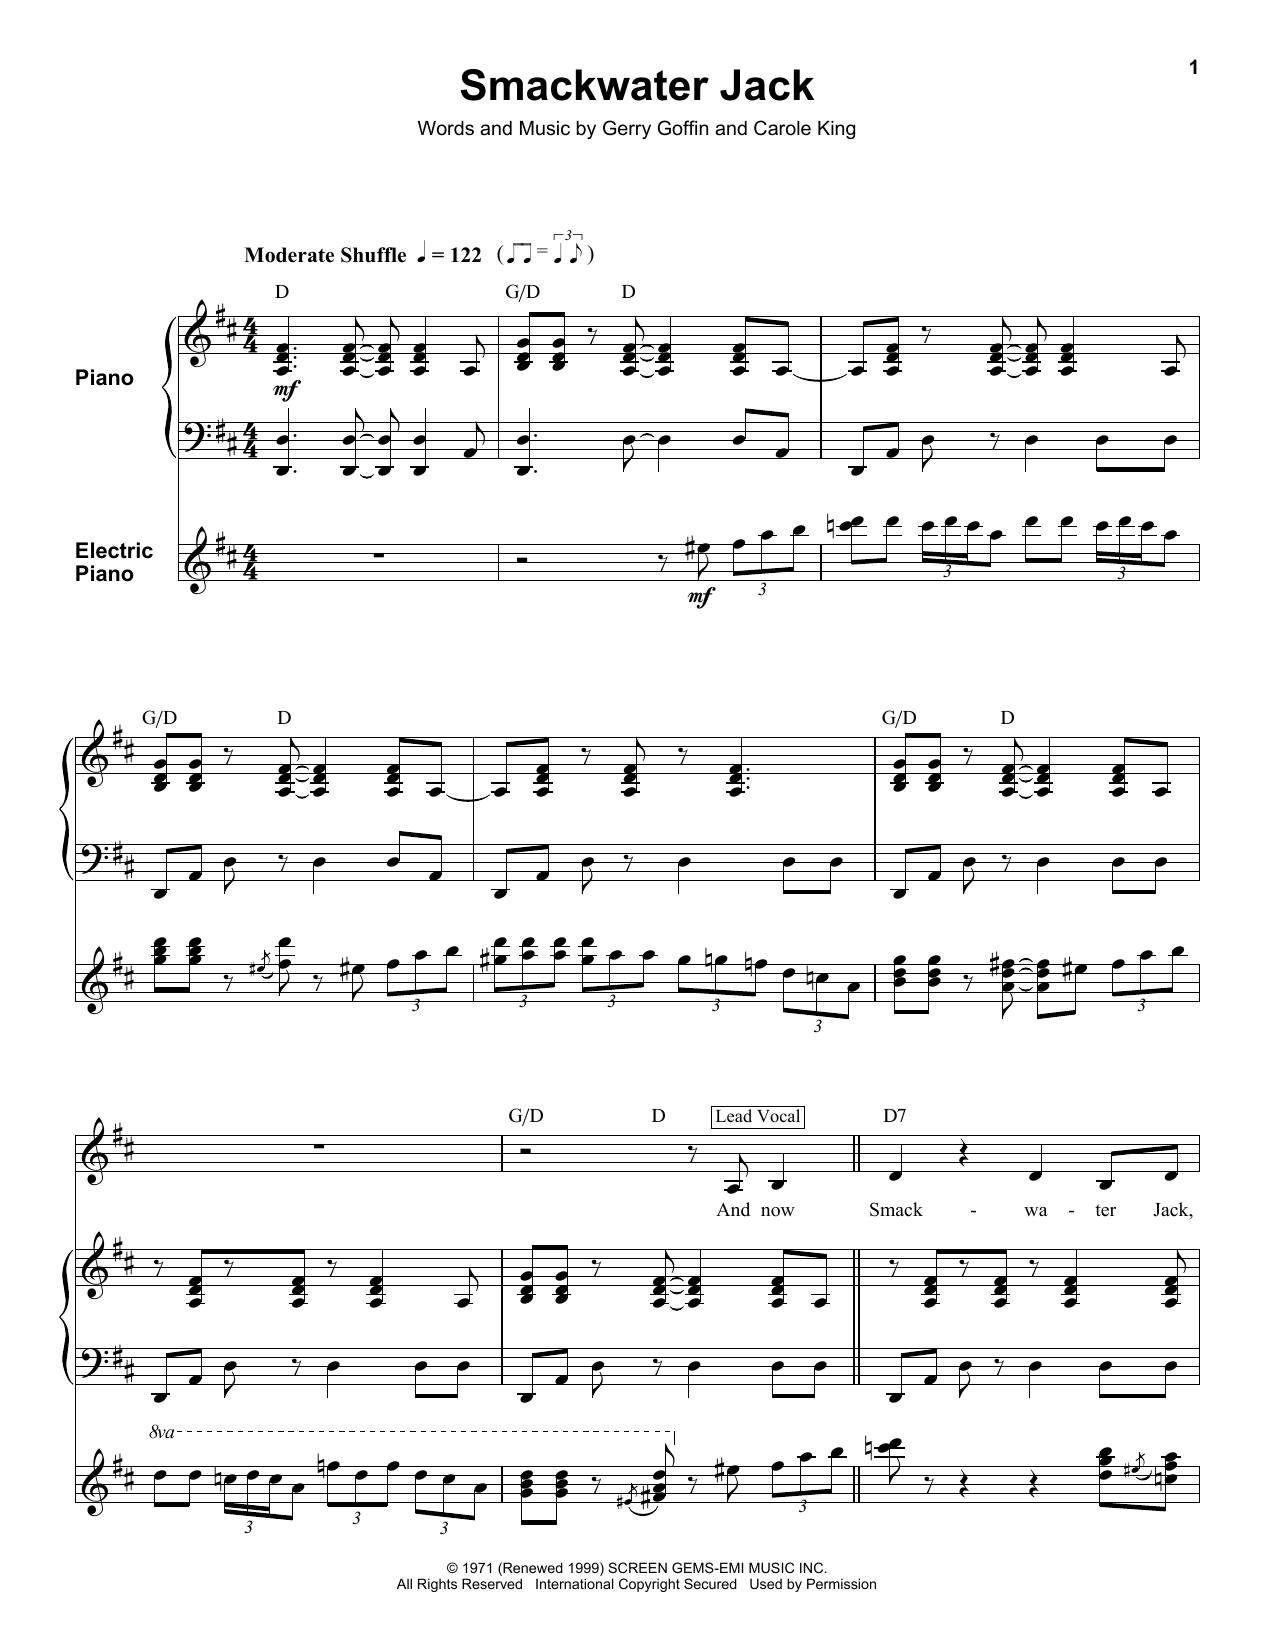 Smackwater Jack Sheet Music